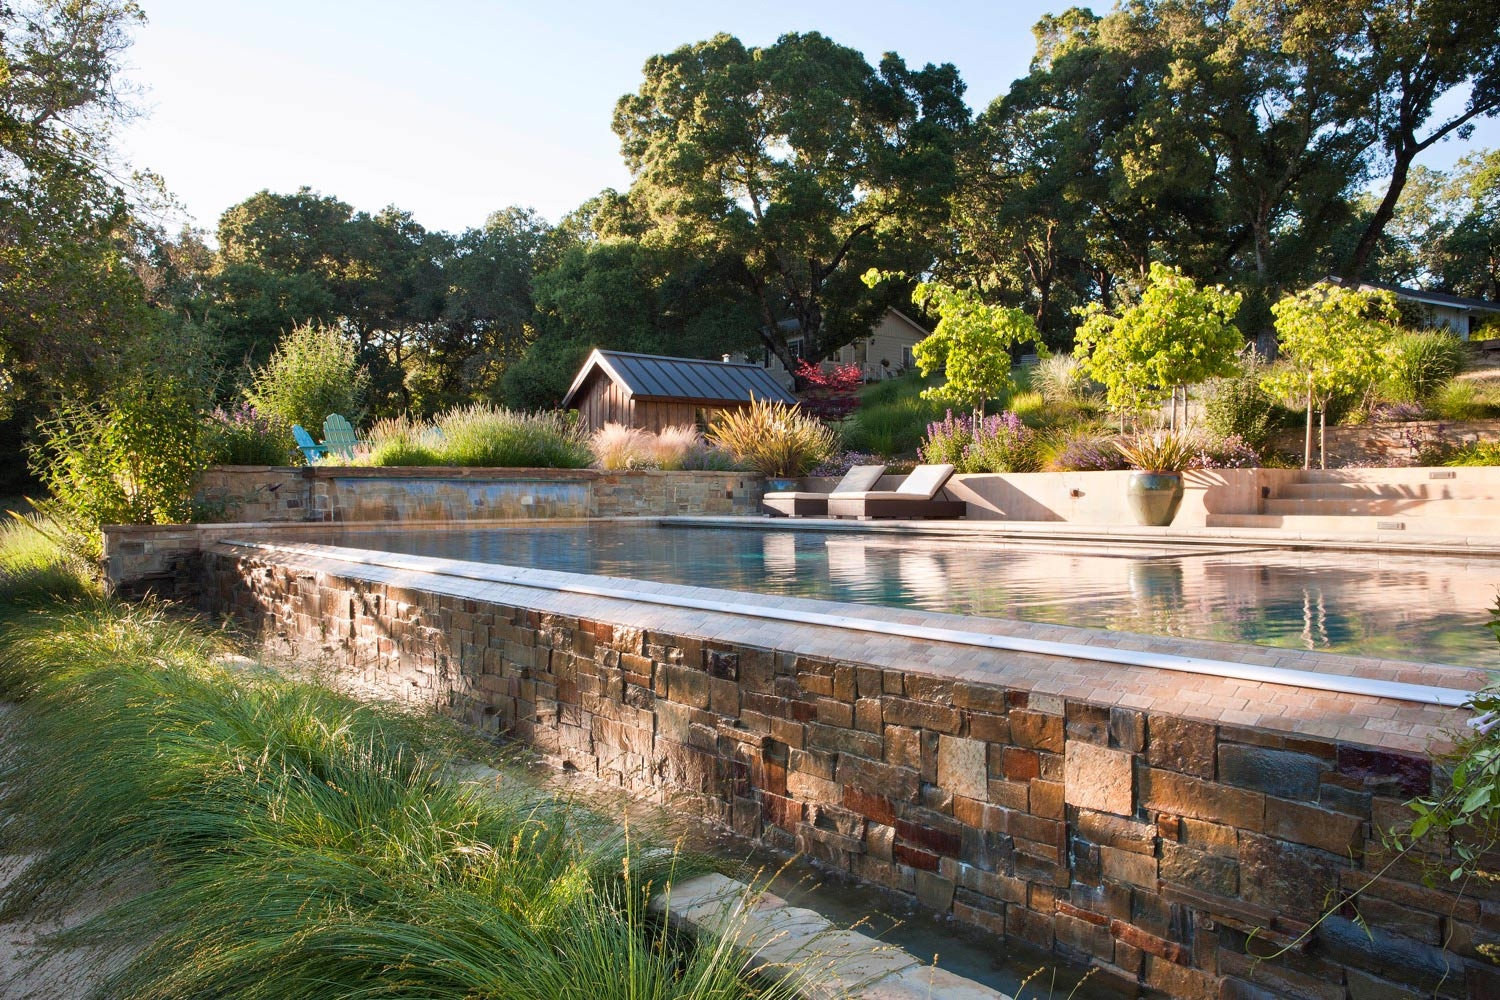 The pool has a vanishing edge along its long side, where the water falls over a stone surface like a fountain.